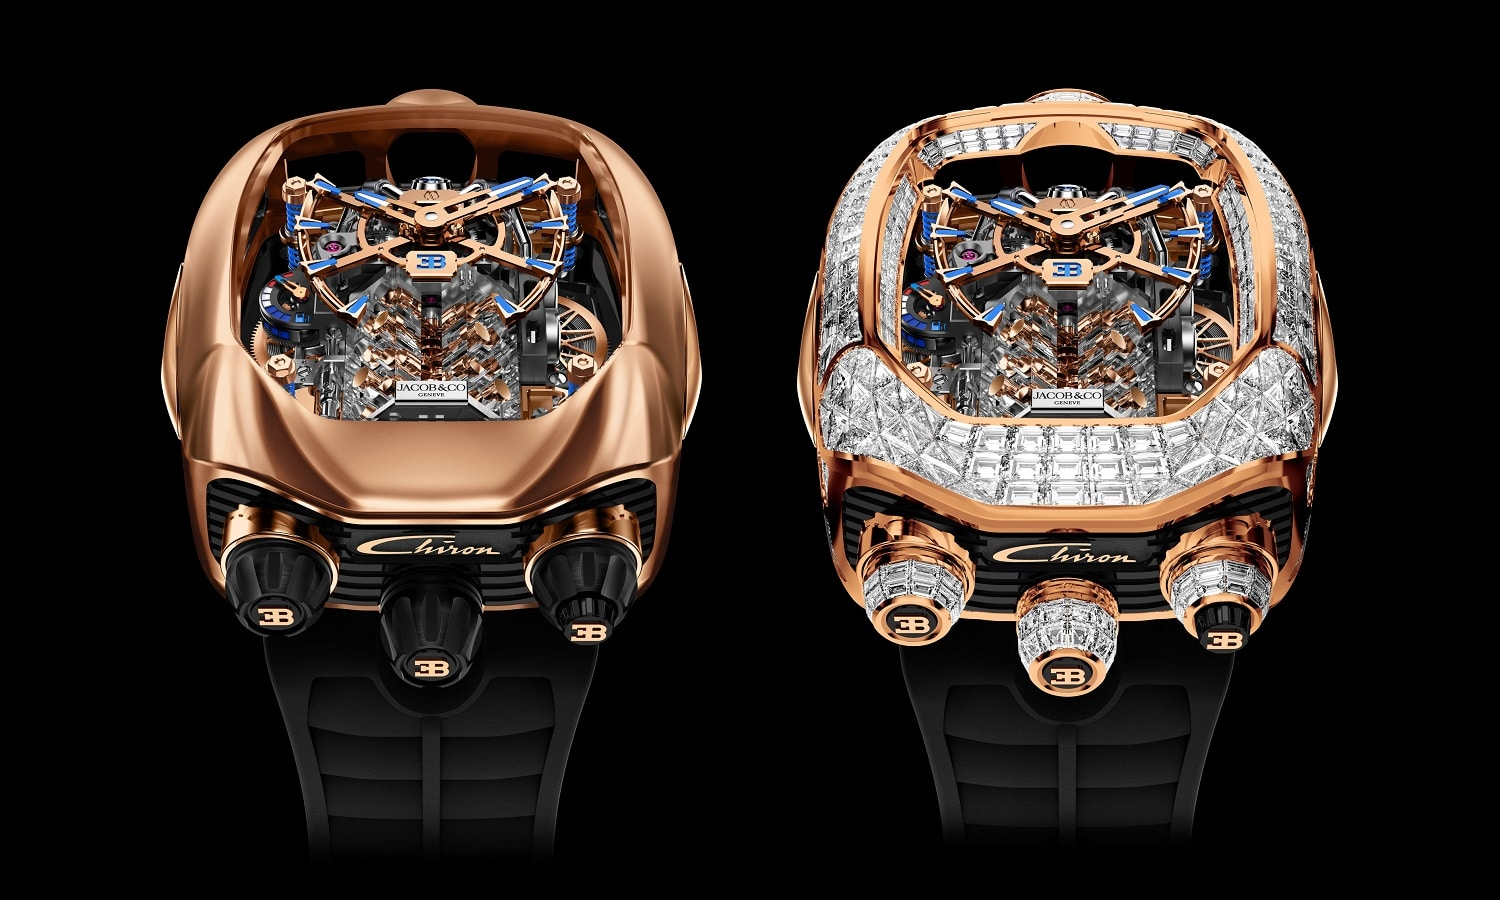 Jacob & Co. Chiron Tourbillon de oro rosa